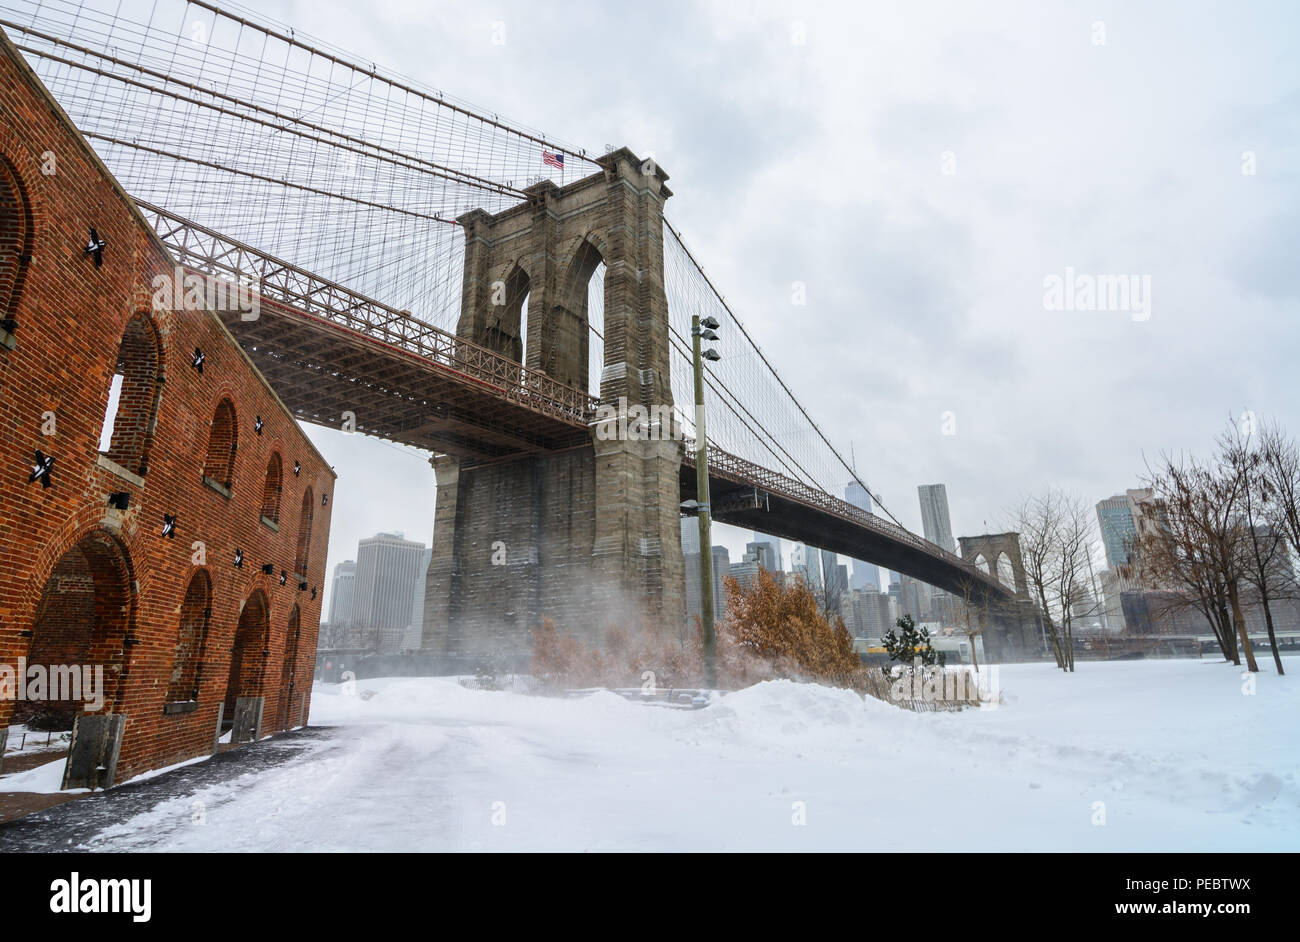 The Brooklyn Bridge in DUMBO, NYC just after winter storm Grayson hit in January 2018. - Stock Image